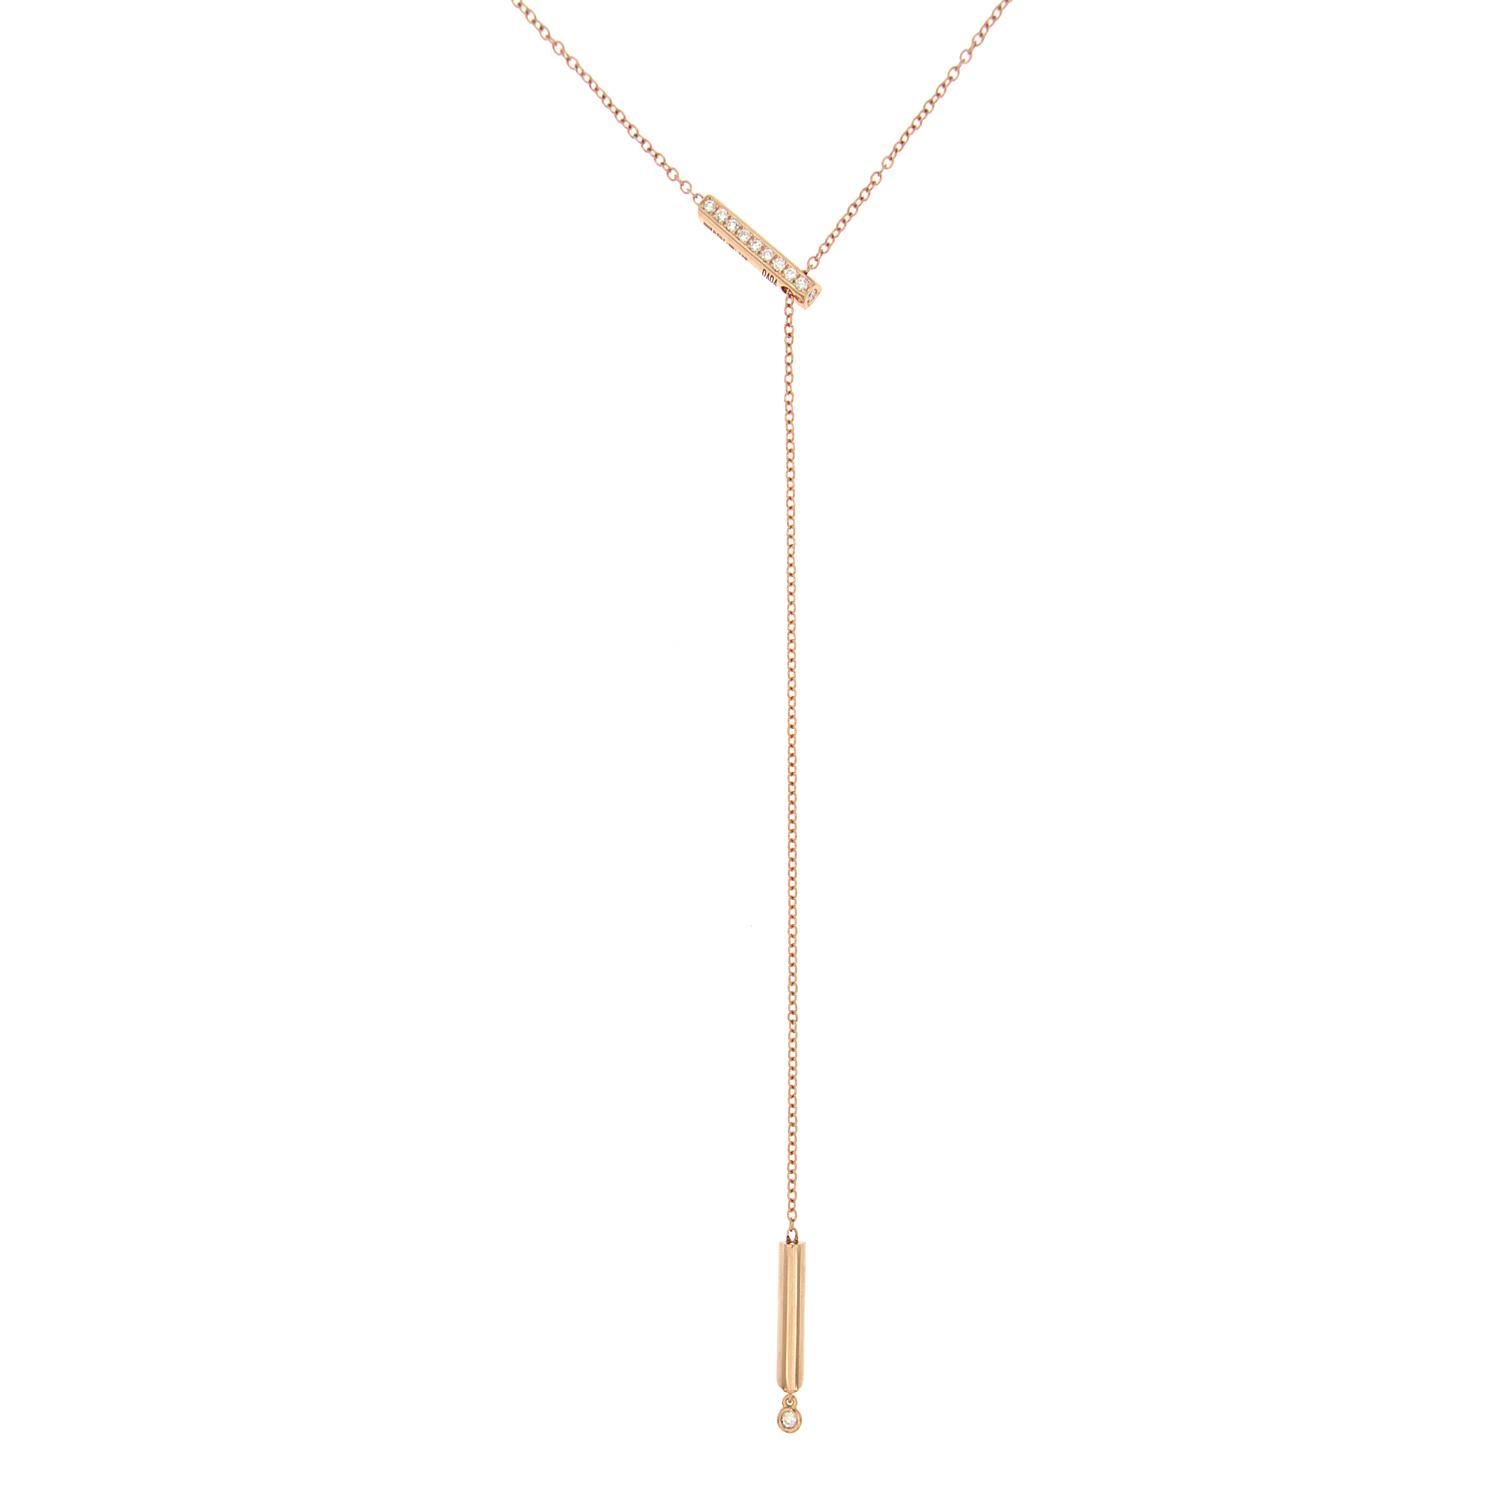 Y-shape necklace in 18k gold and diamonds